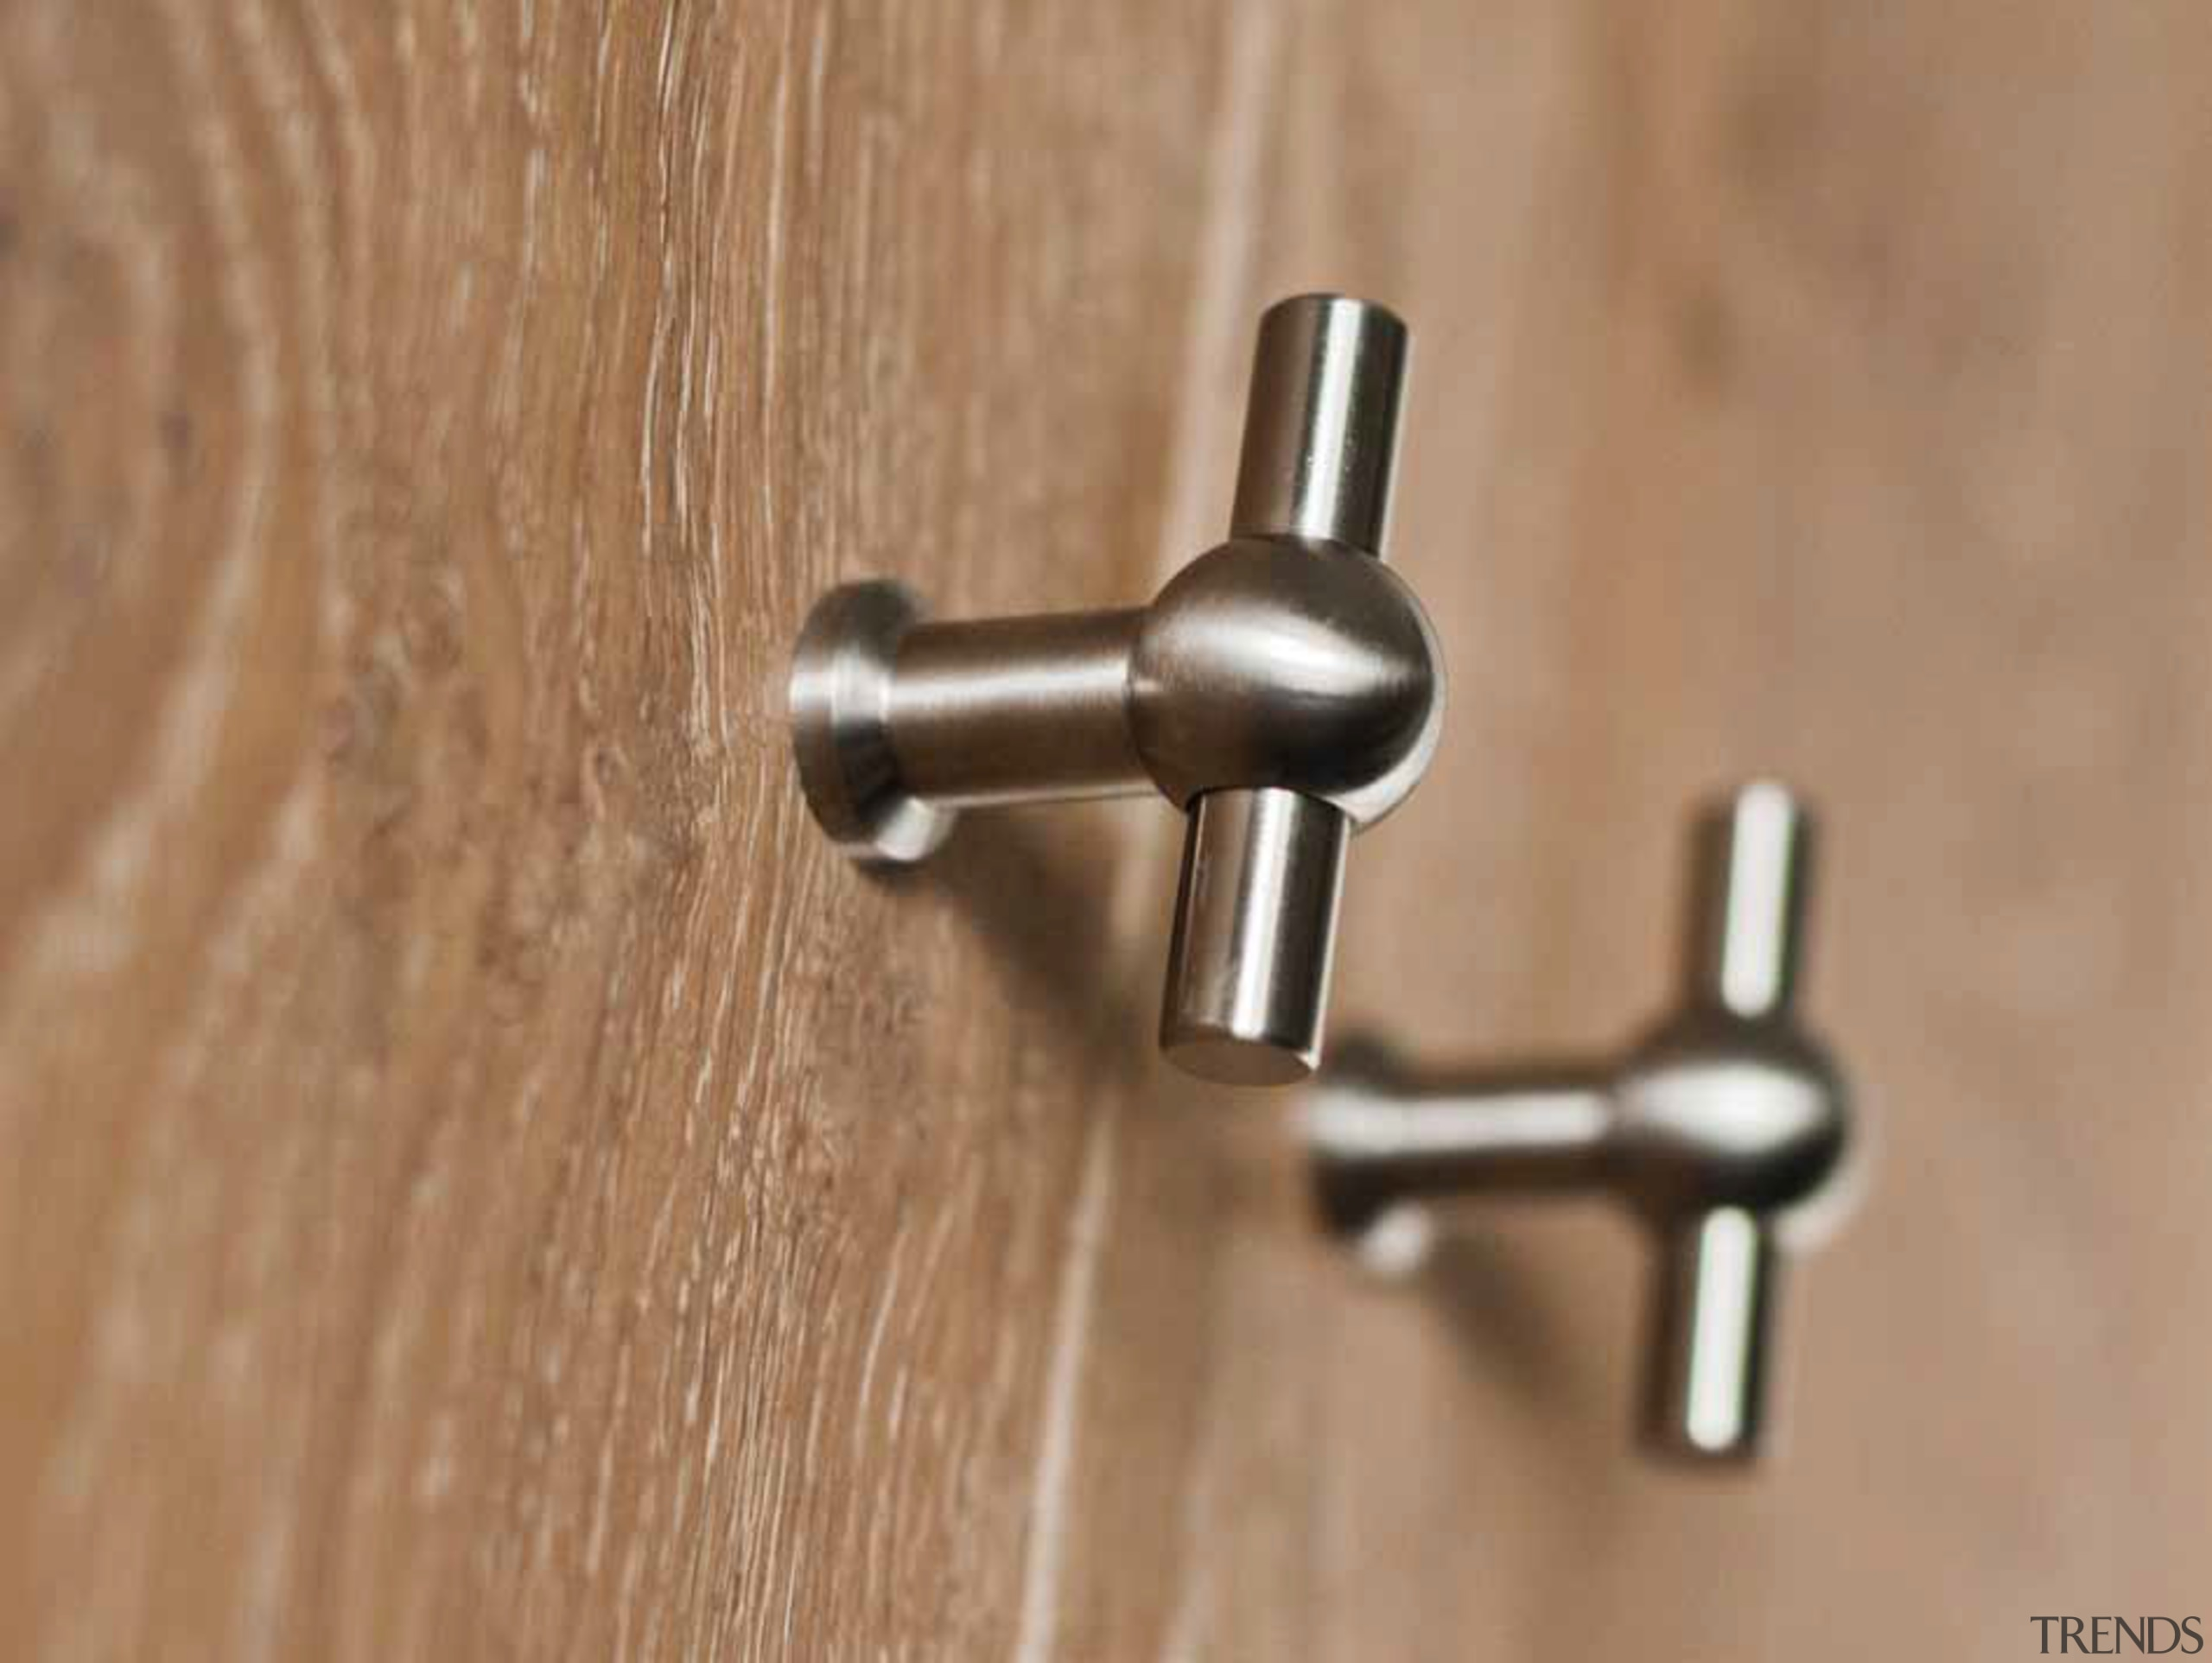 FV195 - Solid Cabinet Knob. Available in Polished tap, brown, orange